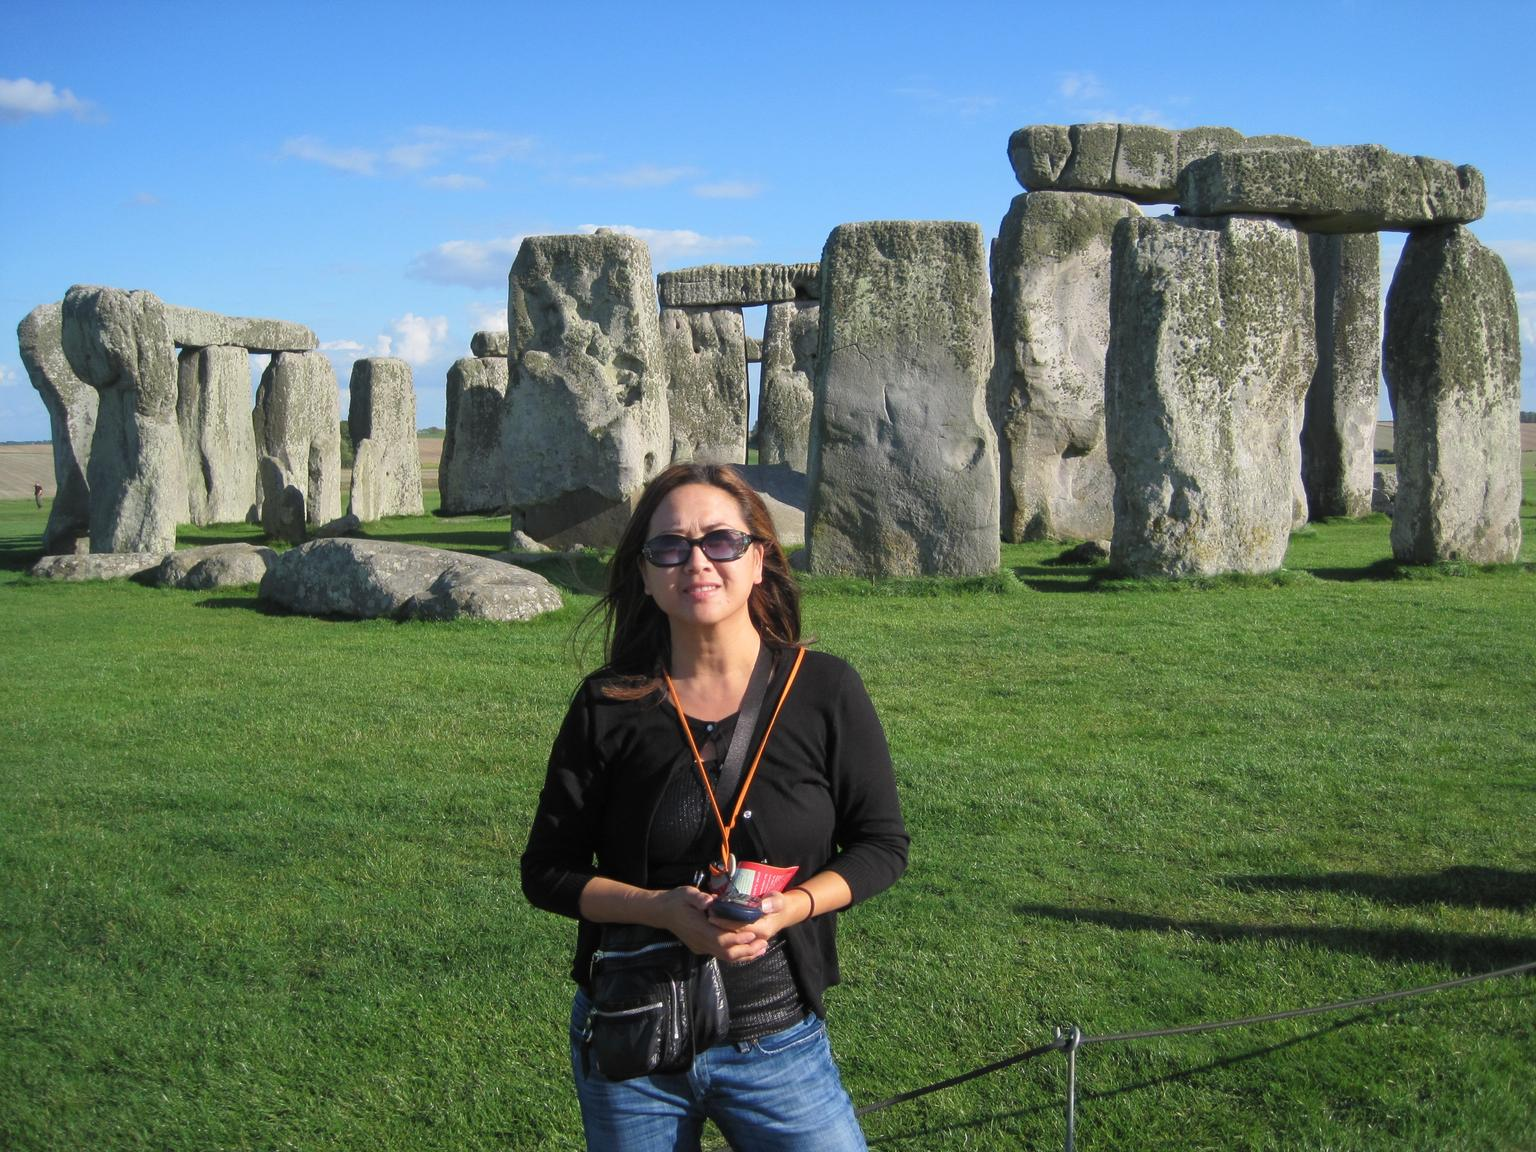 MORE PHOTOS, Excursion to Stonehenge, Windsor Castle and Bath from London. Everyday